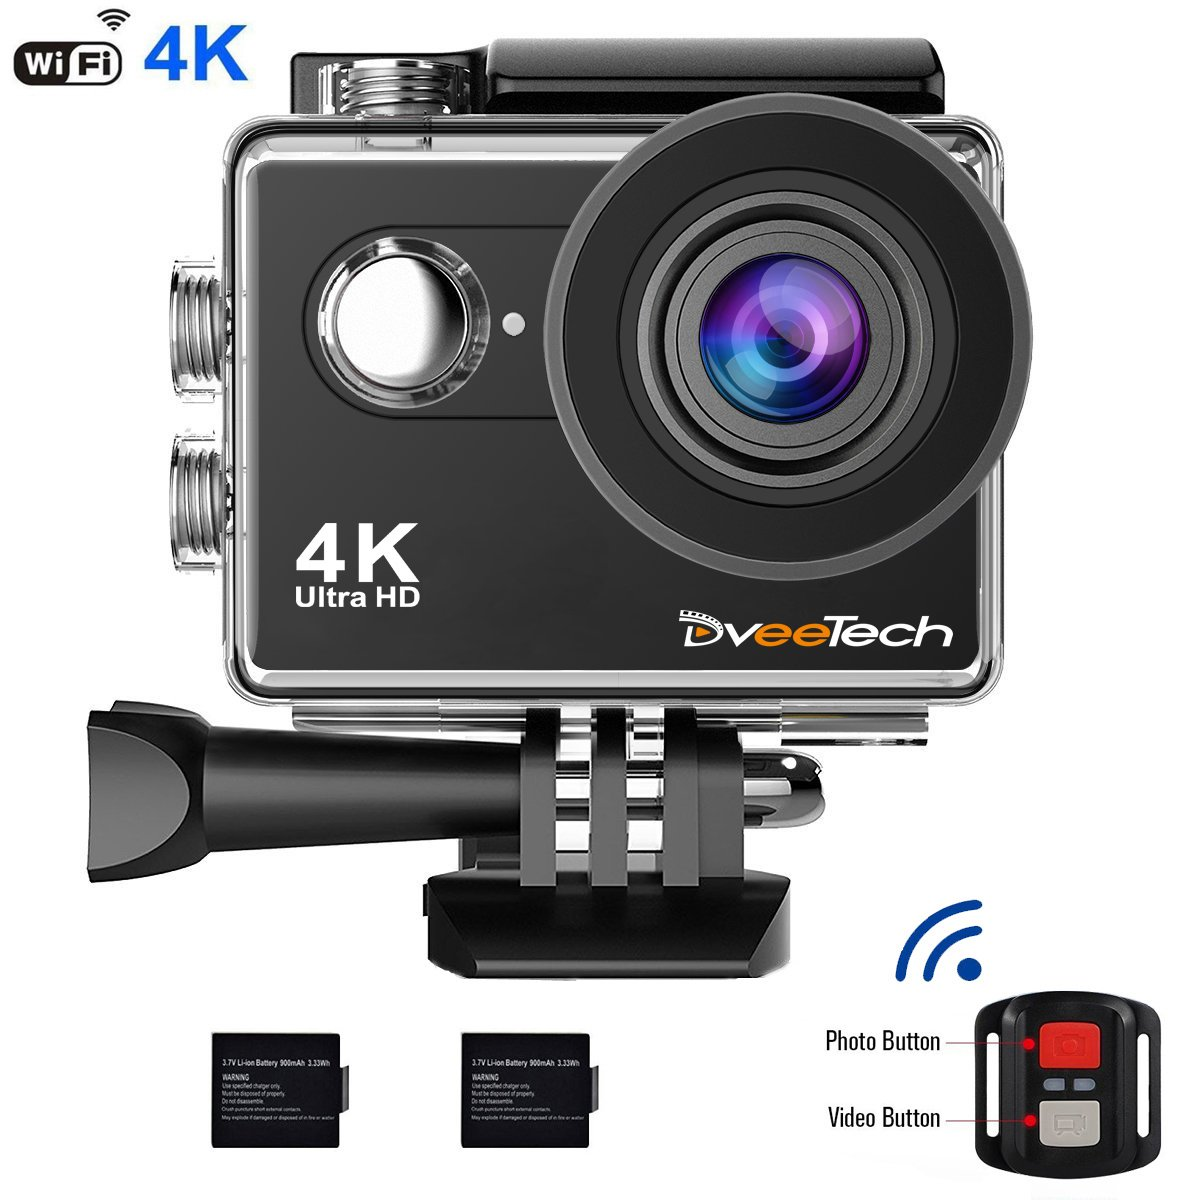 Dveetech 4k Action Camera Wifi Waterproof 30M Sport Camera 16Mp ultra hd 1080p Underwater DV Camcorder Action Cam with Remote 2 Batteries Bike Helmet Mounting Accessories Kit for Cycling Snorkeling